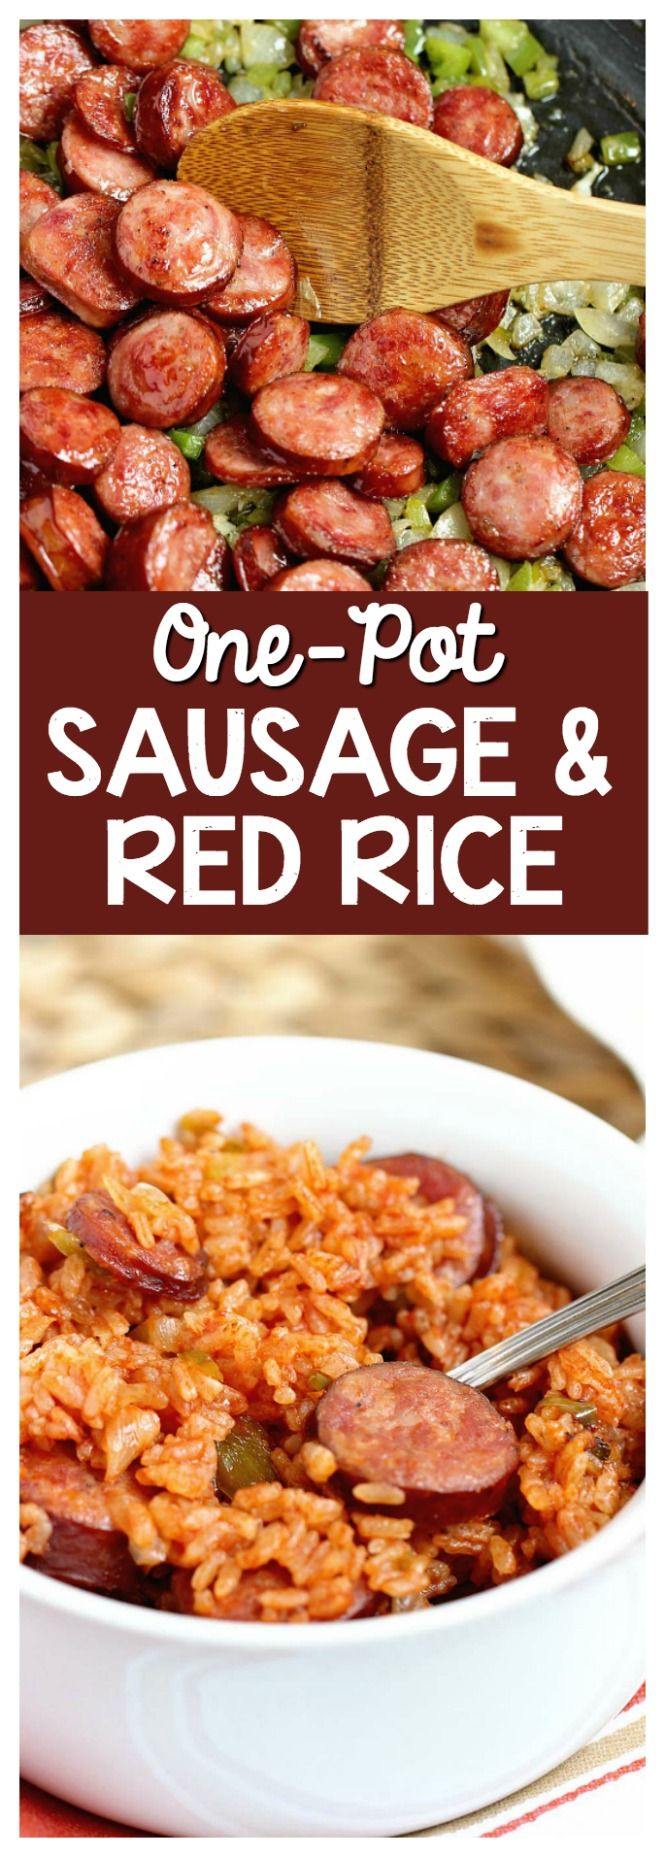 Photo of One-Pot Sausage and Red Rice